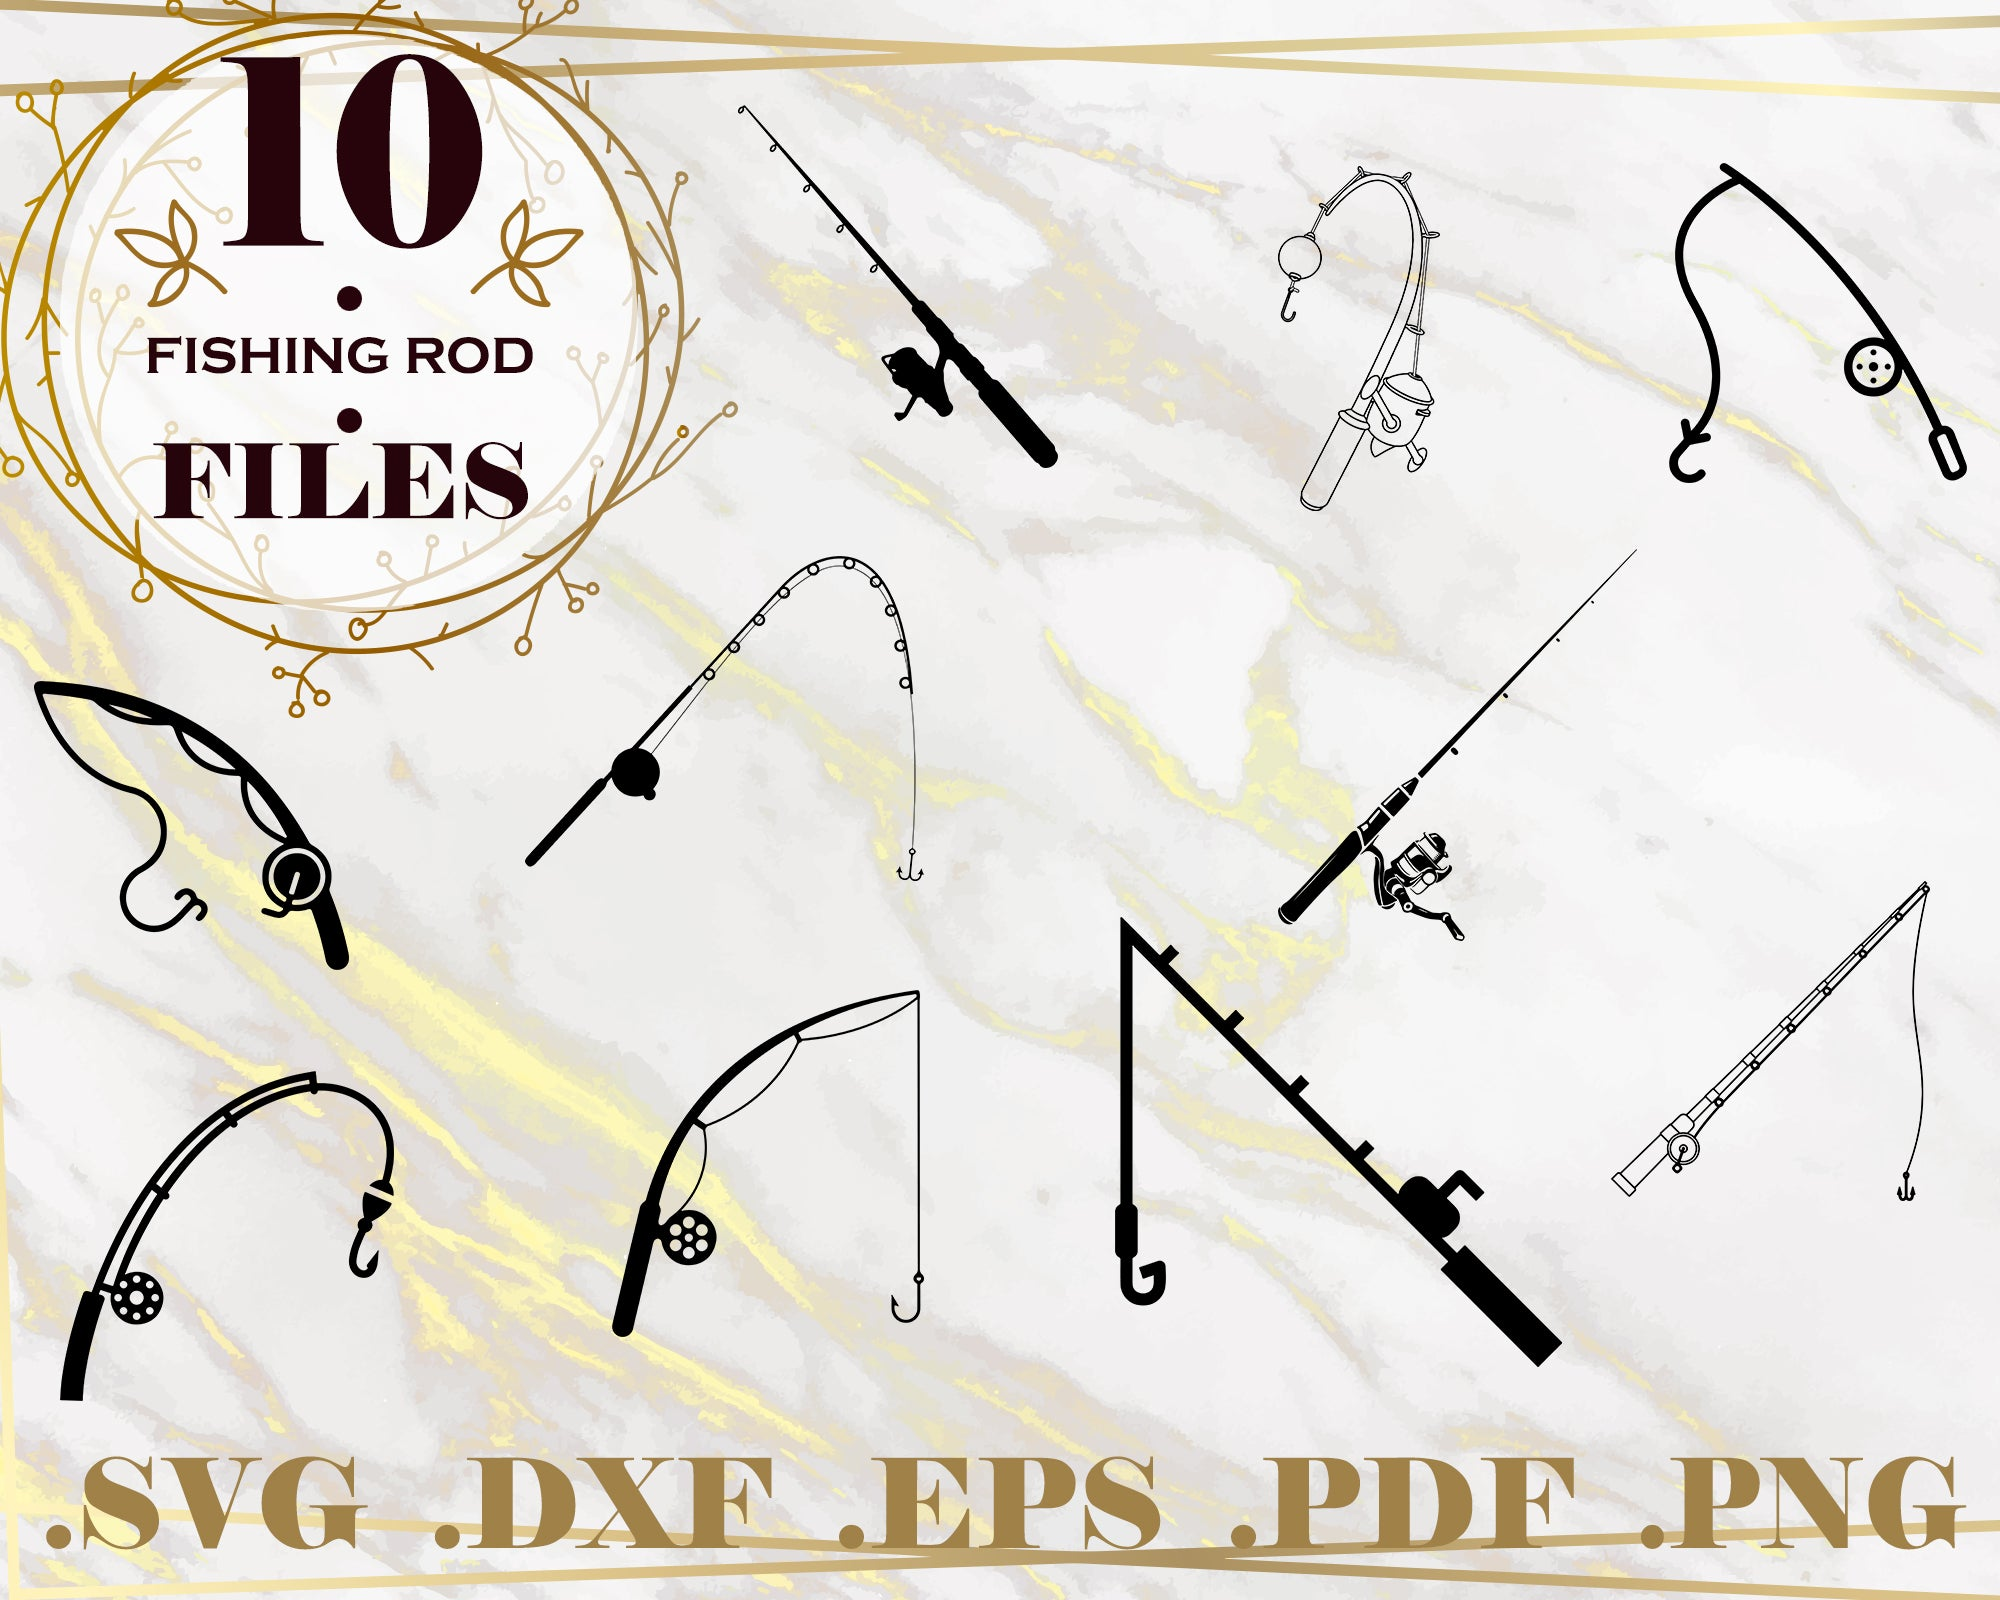 Download Scan N Cut Pole Cricut Files Cut File Silhouette Studio Vector Design Eps File Fishing Rods With Reel Svg Dxf Png Drawing Illustration Digital Lifepharmafze Com